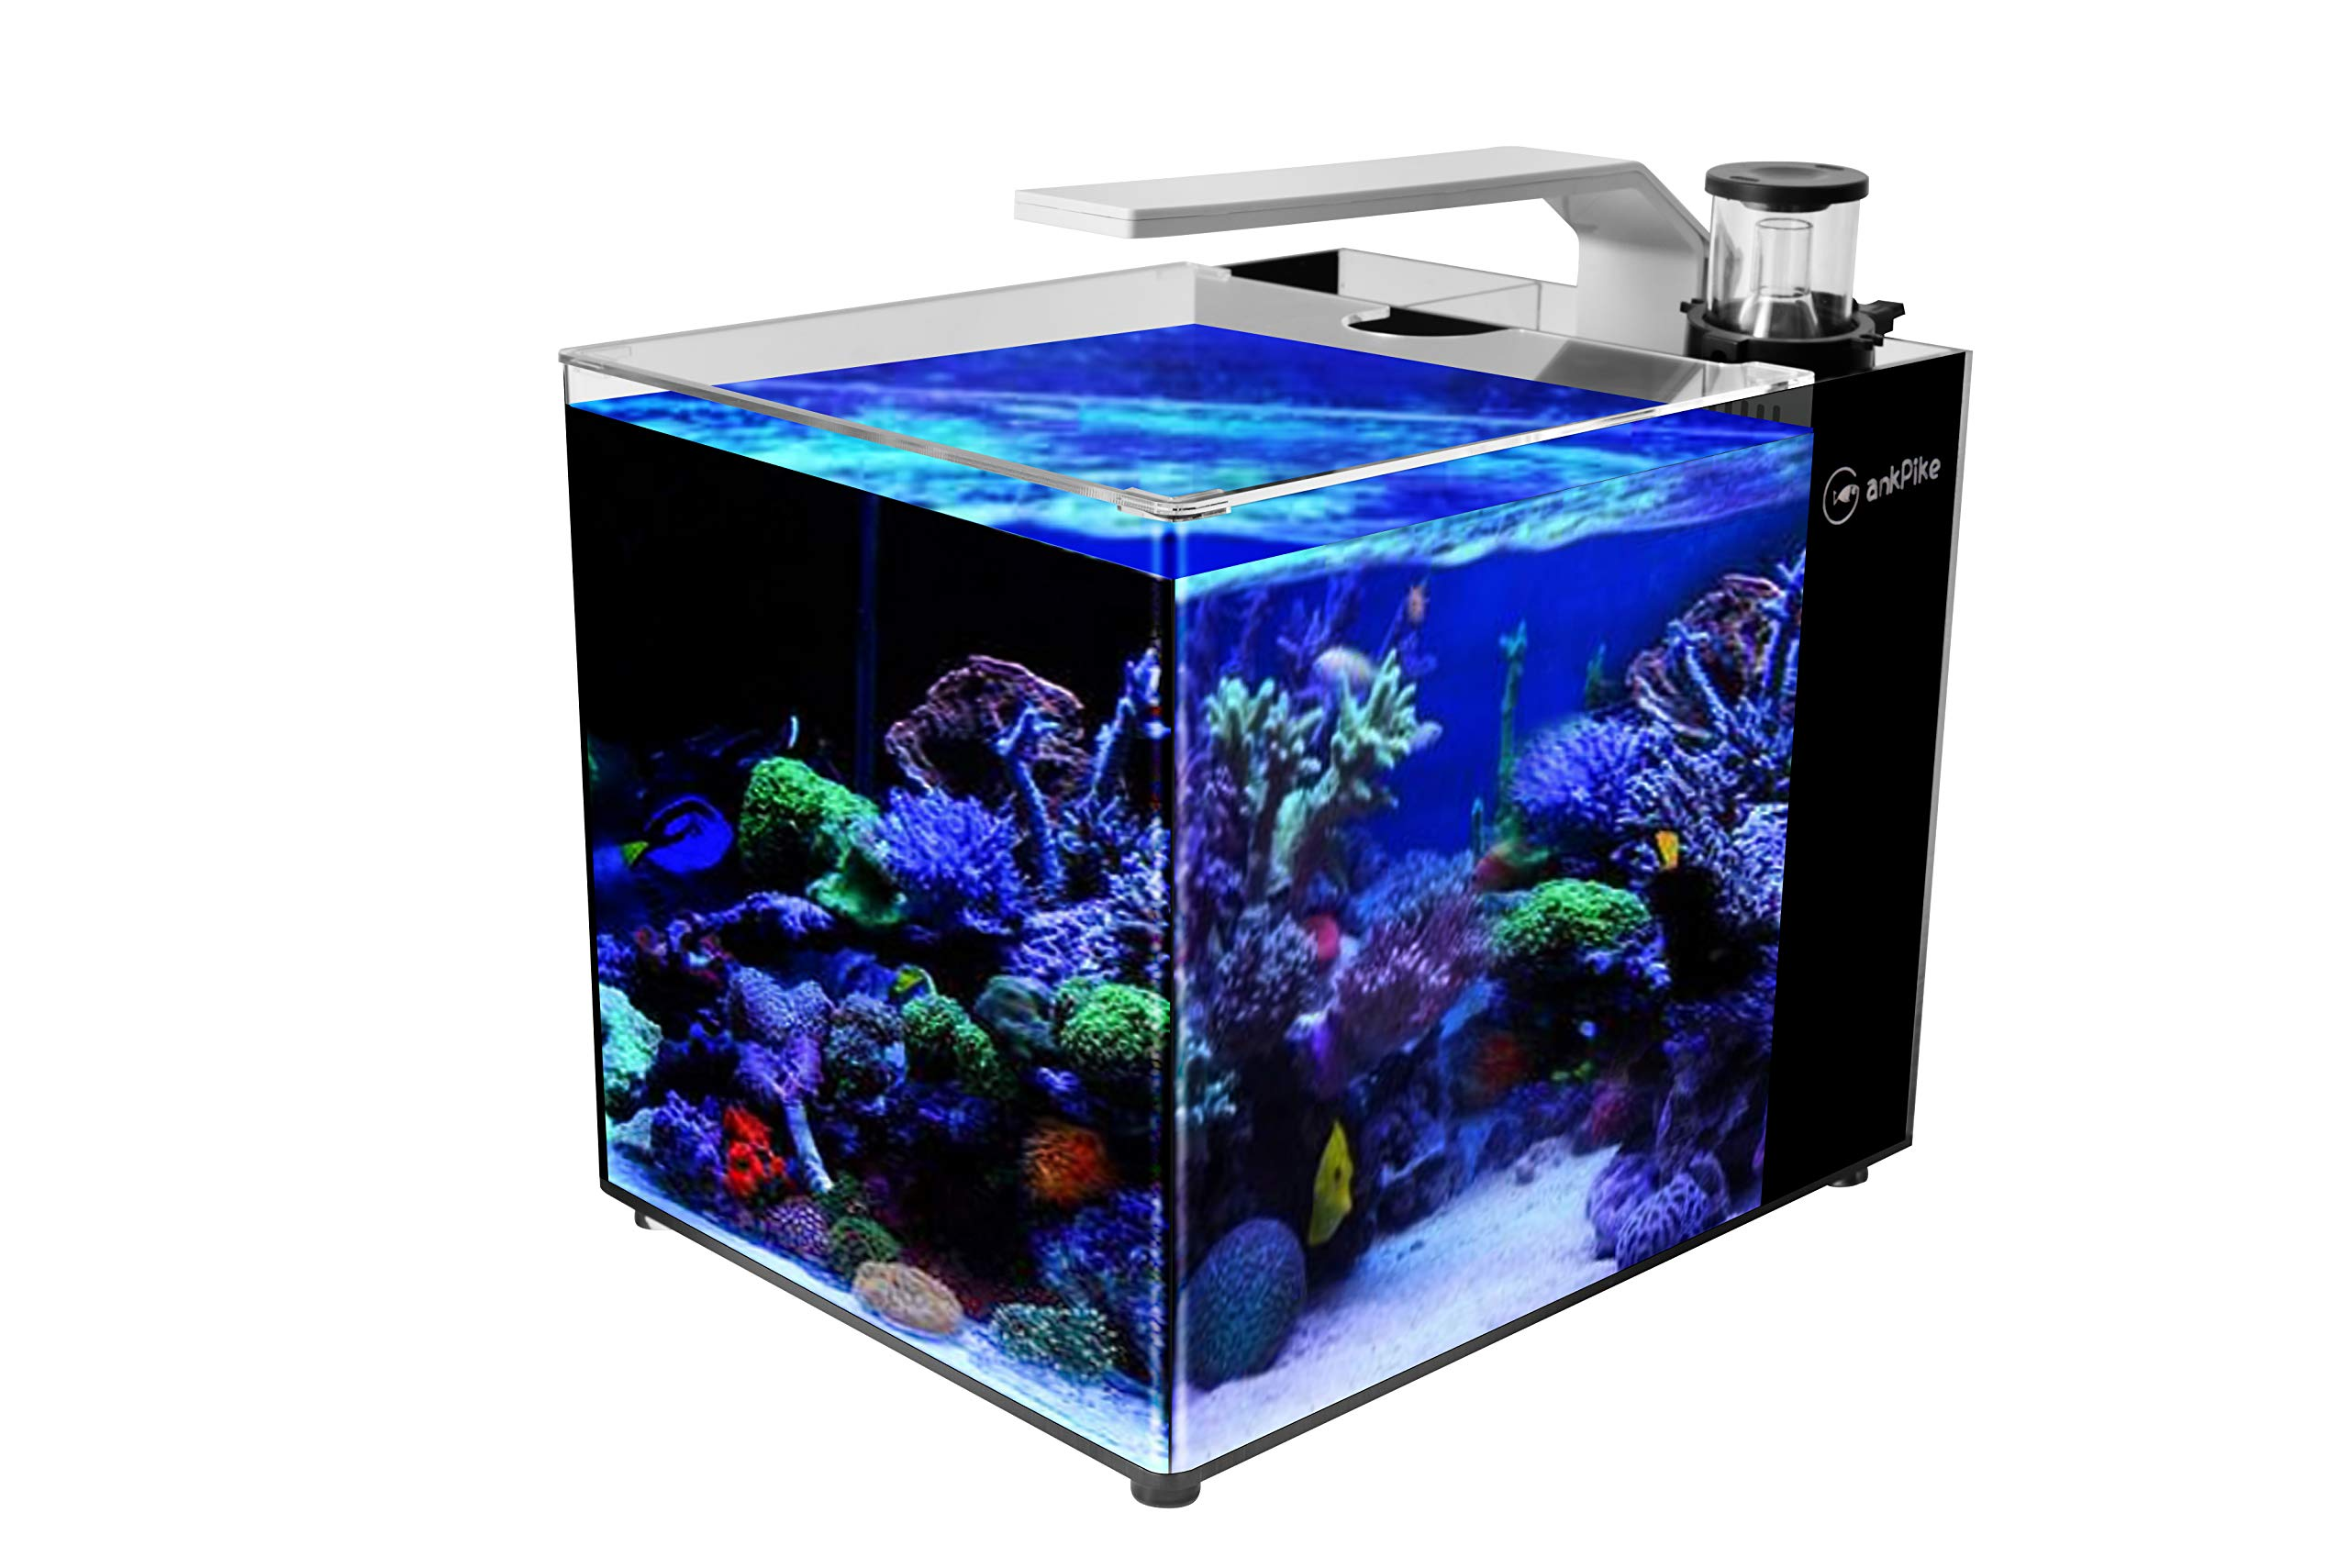 GankPike 6-Gallon Saltwater Aquarium Marine Fish Tank Reef Tank with Lid, Protein Skimmer, Heater, LCD Digital Thermometer and Pump